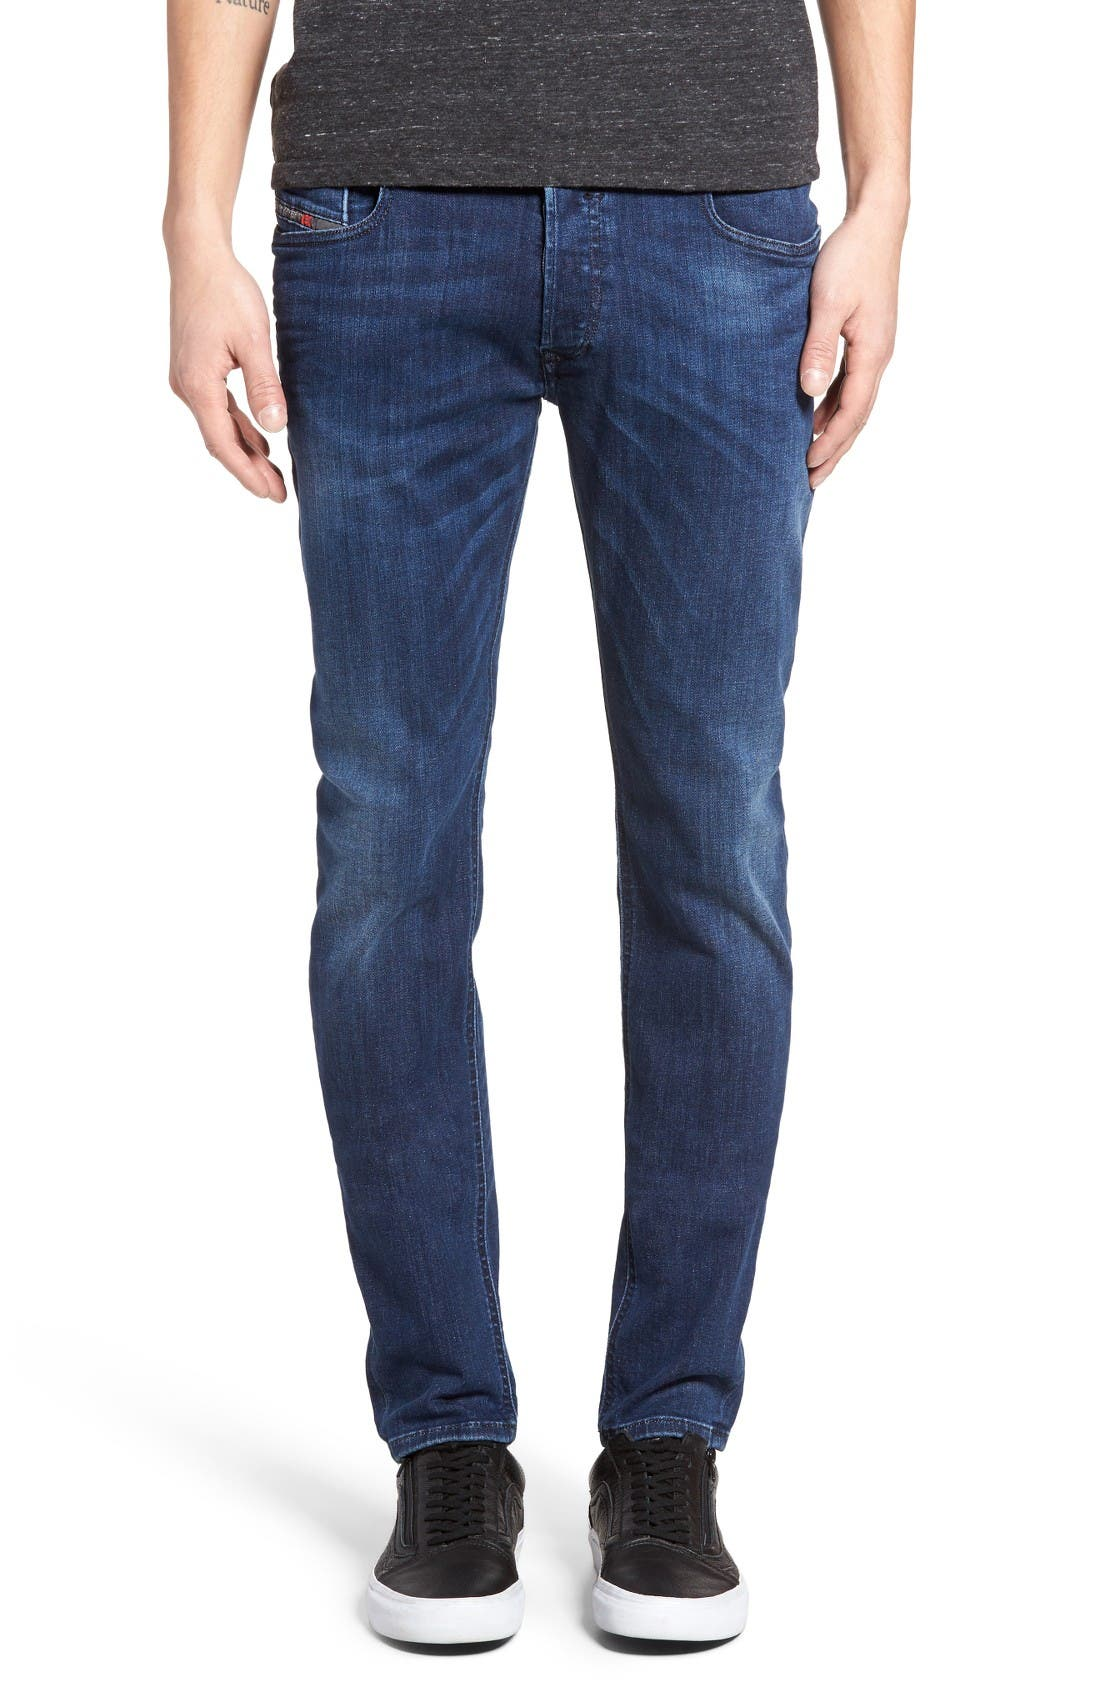 Alternate Image 1 Selected - DIESEL® Sleenker Skinny Fit Jeans (0679K)